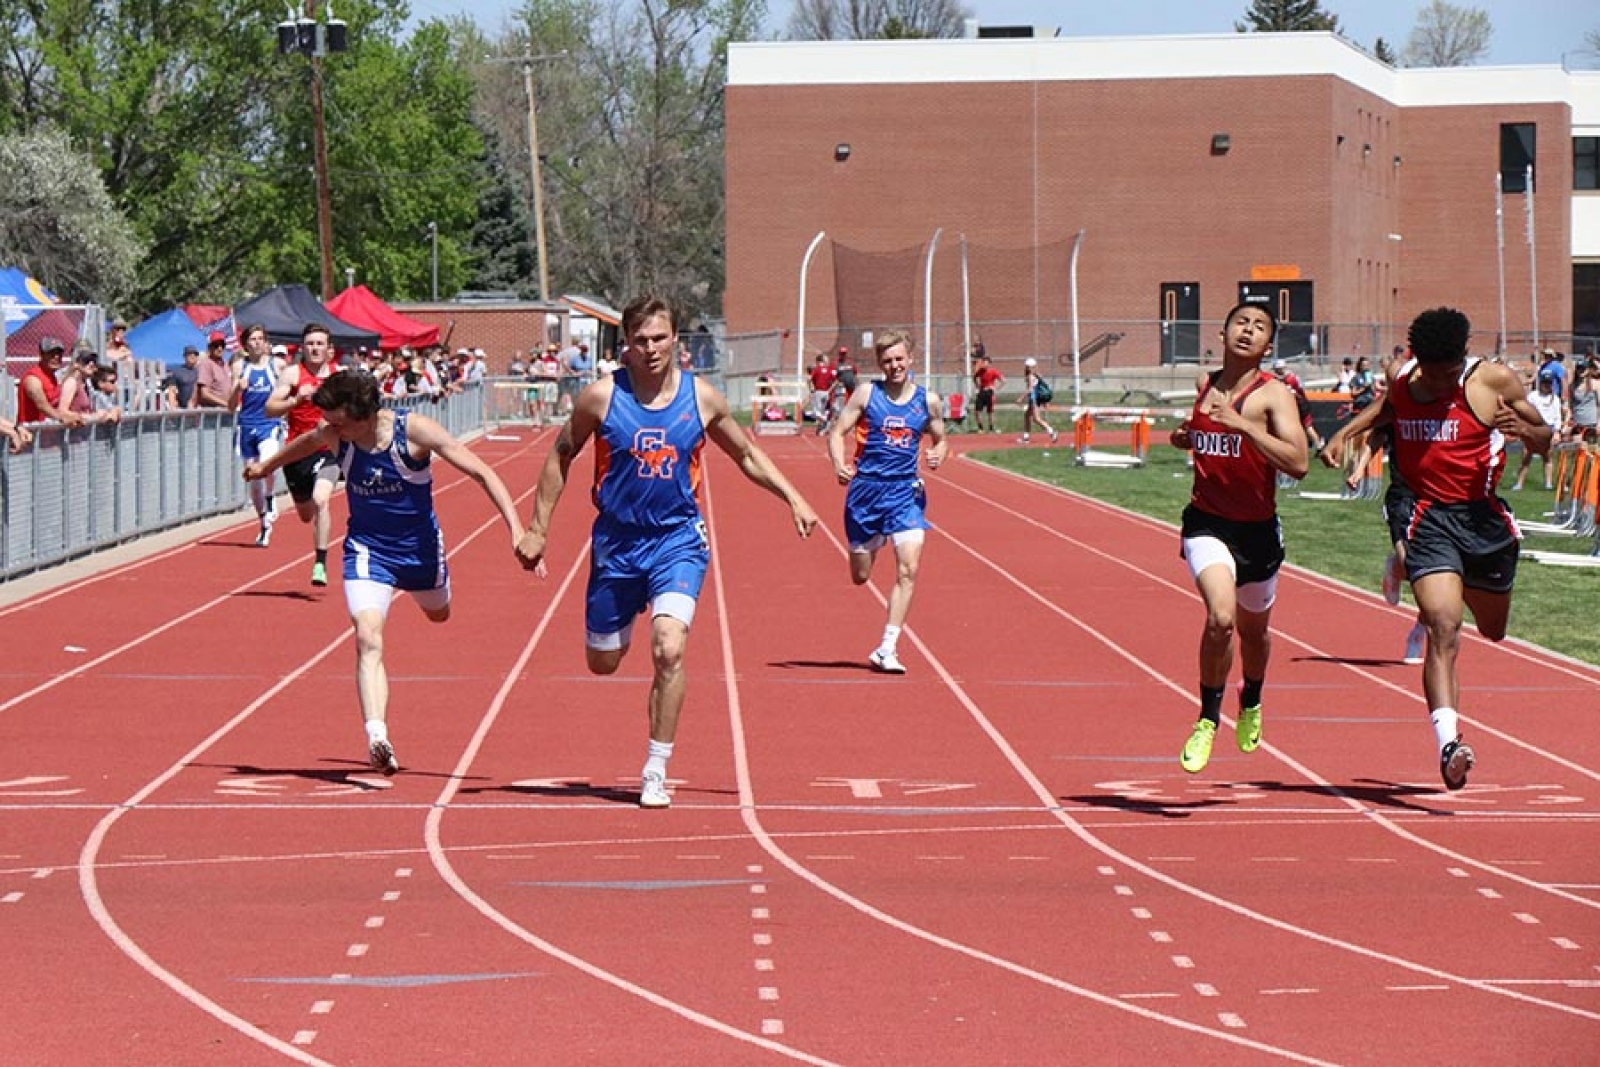 Mustangs compete at District Track & Field: Campbell sets new school record